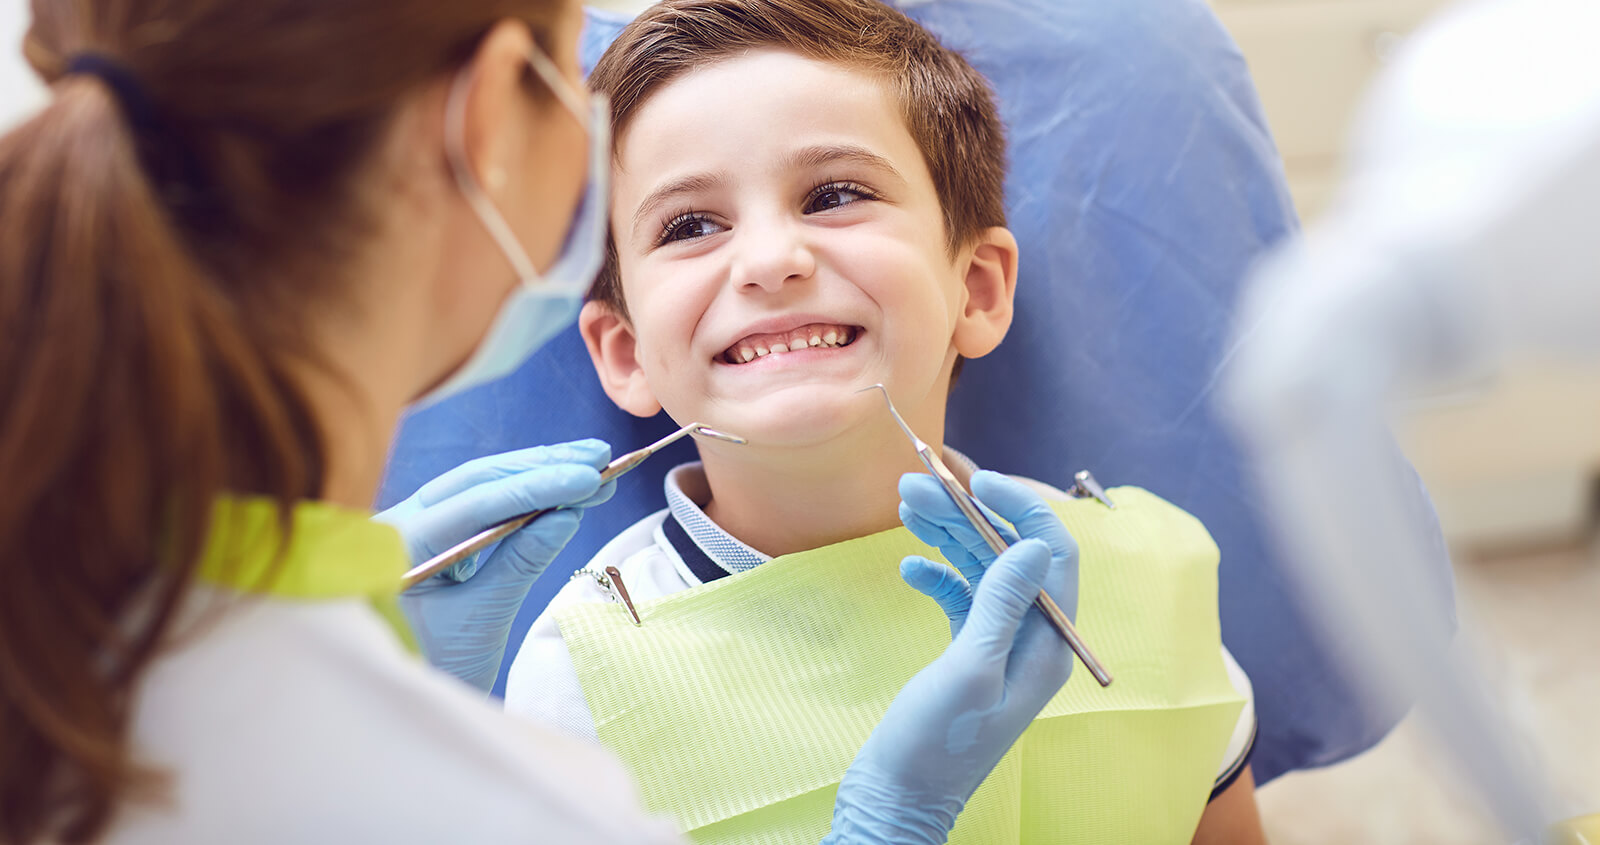 Kids Dentist in Highland, MI Provides Tips on What to Expect from their First Exam